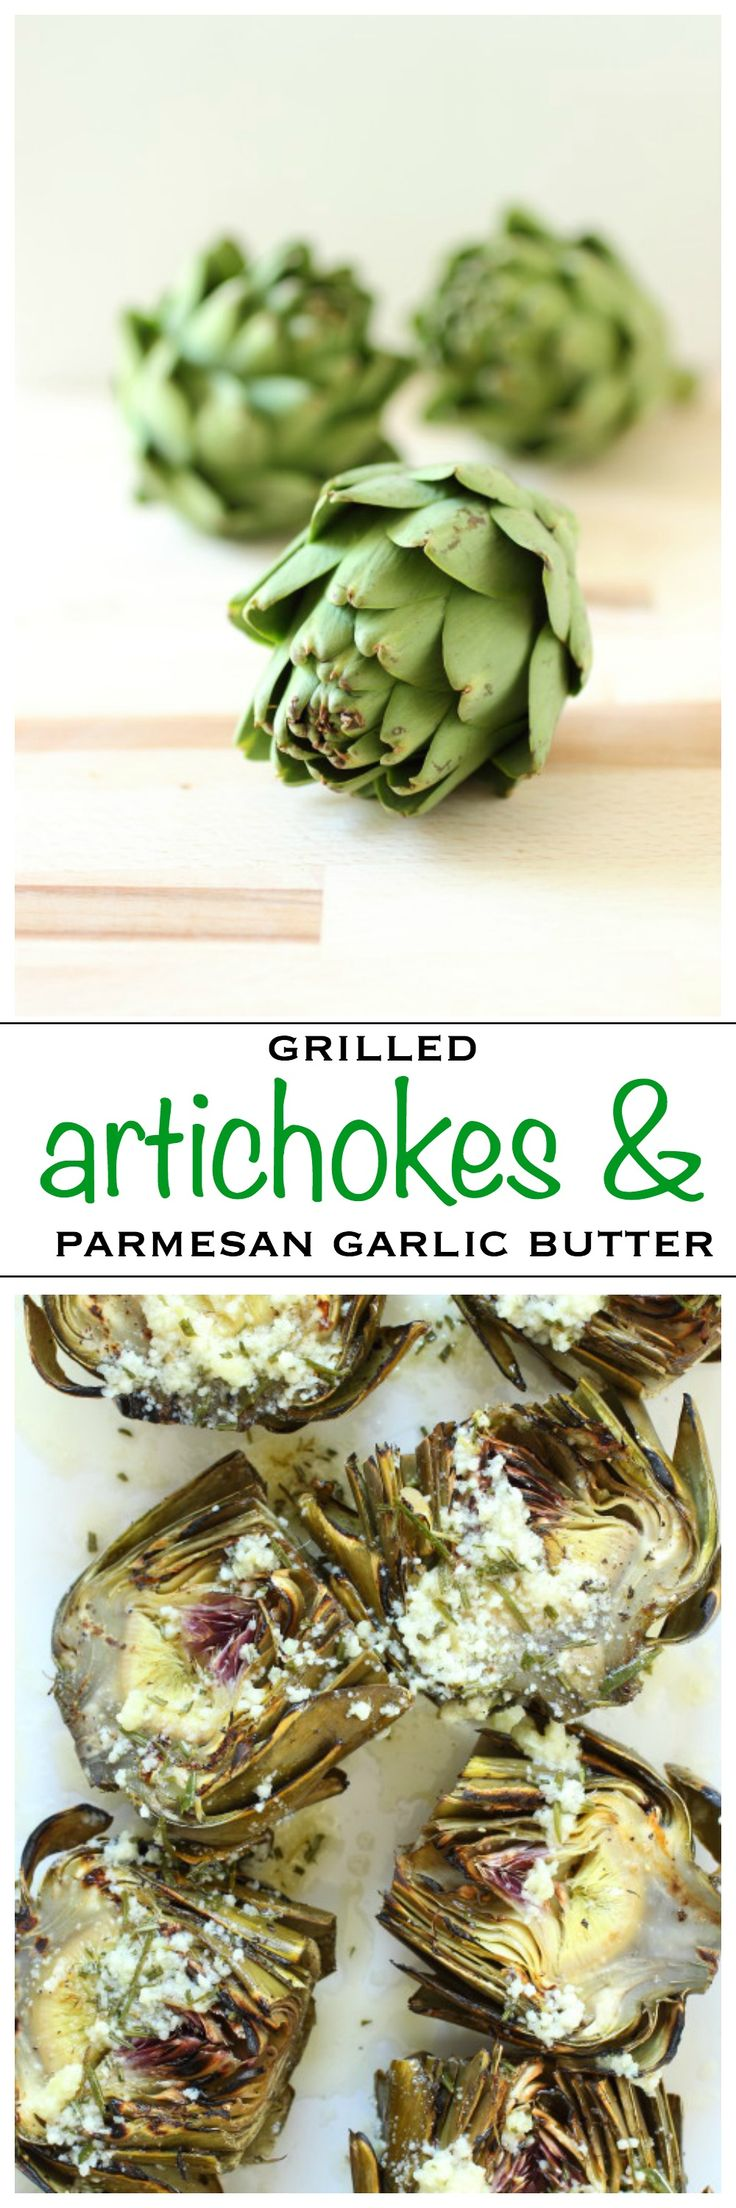 Grilled artichokes covered in a Parmesan cheese and garlic butter   Foodness Gracious